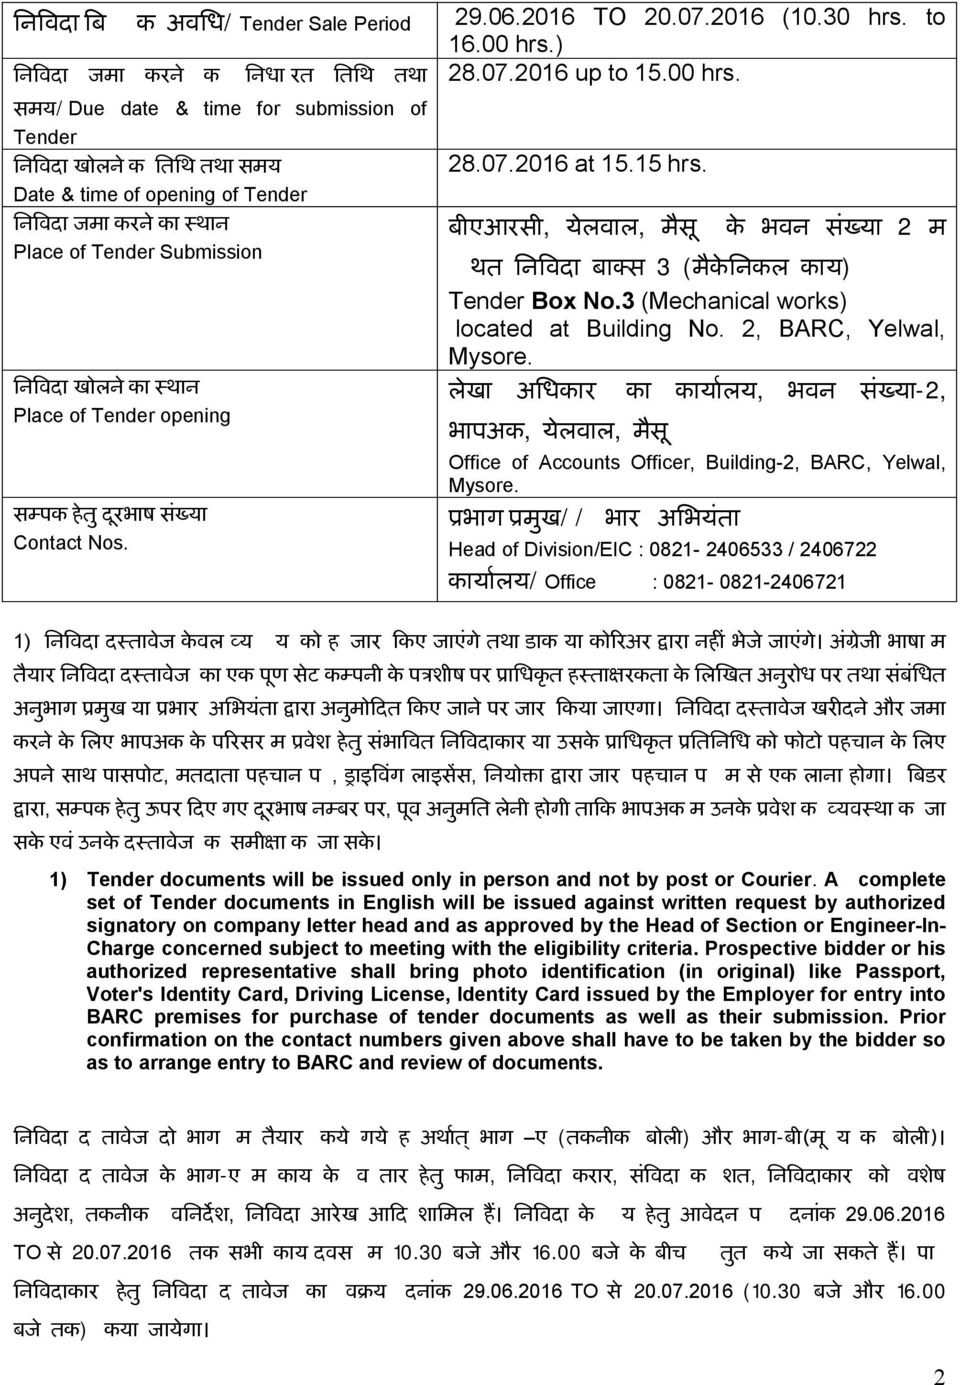 ,, 2 3 ( ) Tender Box No.3 (Mechanical works) located at Building No. 2, BARC, Yelwal, Mysore., -2,,, Office of Accounts Officer, Building-2, BARC, Yelwal, Mysore.